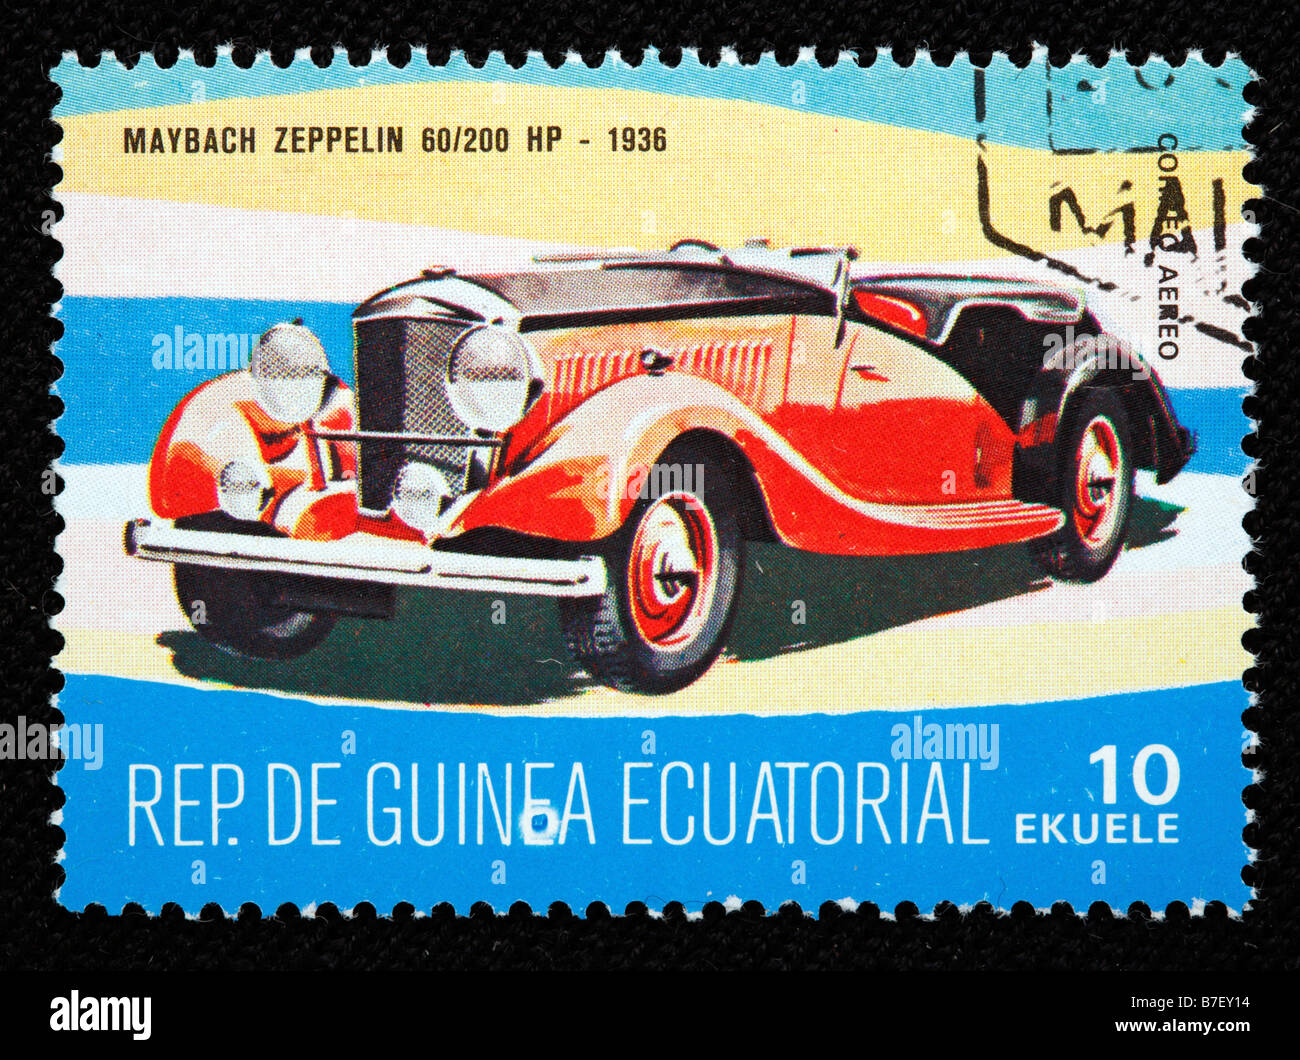 History of transport, car Maybach Zeppelin 60 200 HP (1936), postage stamp, Equatorial Guinea - Stock Image